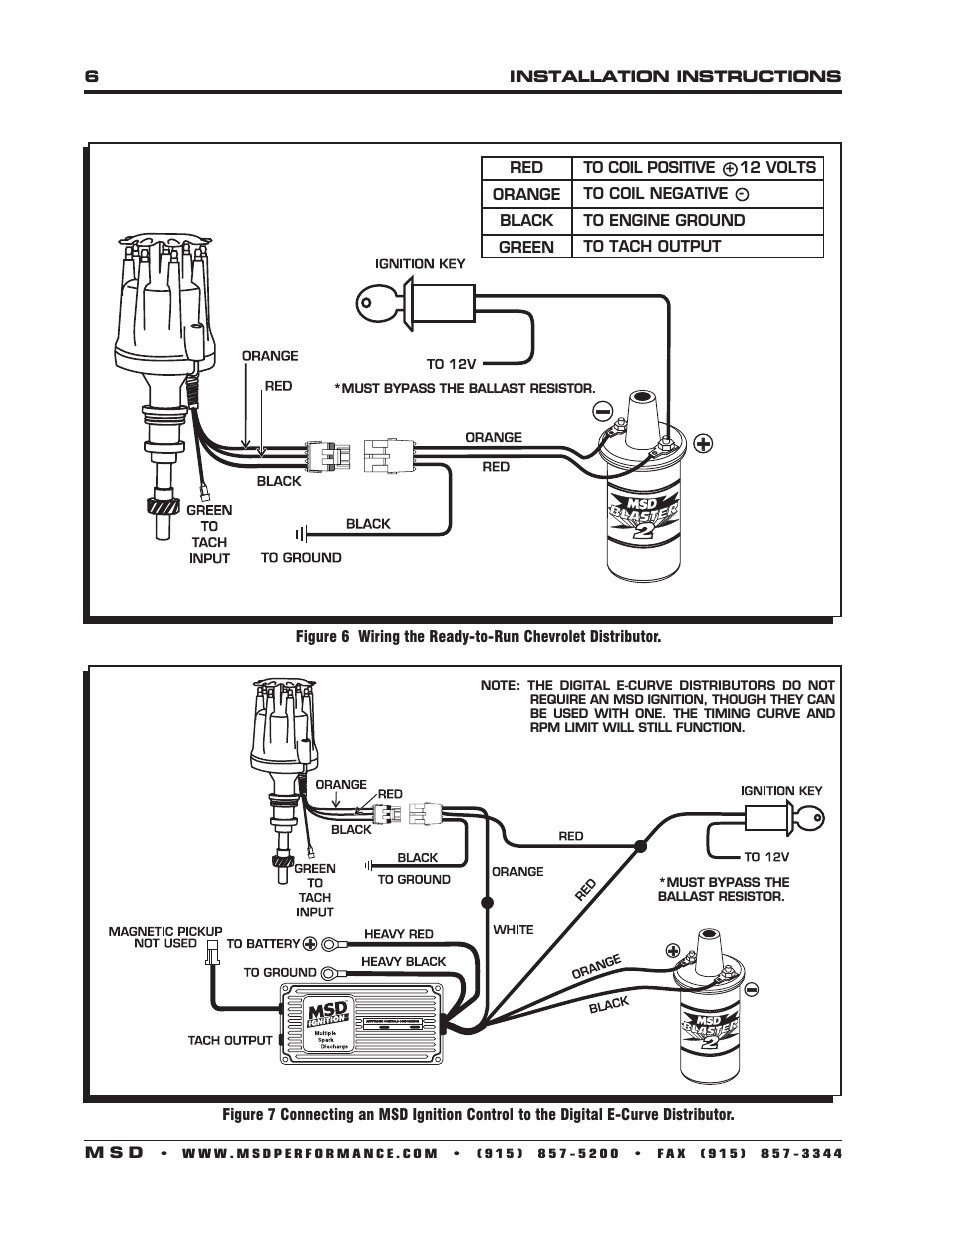 hight resolution of msd pro billet ignition wiring diagram wiring library rh 92 skriptoase de msd chevy distributor problems